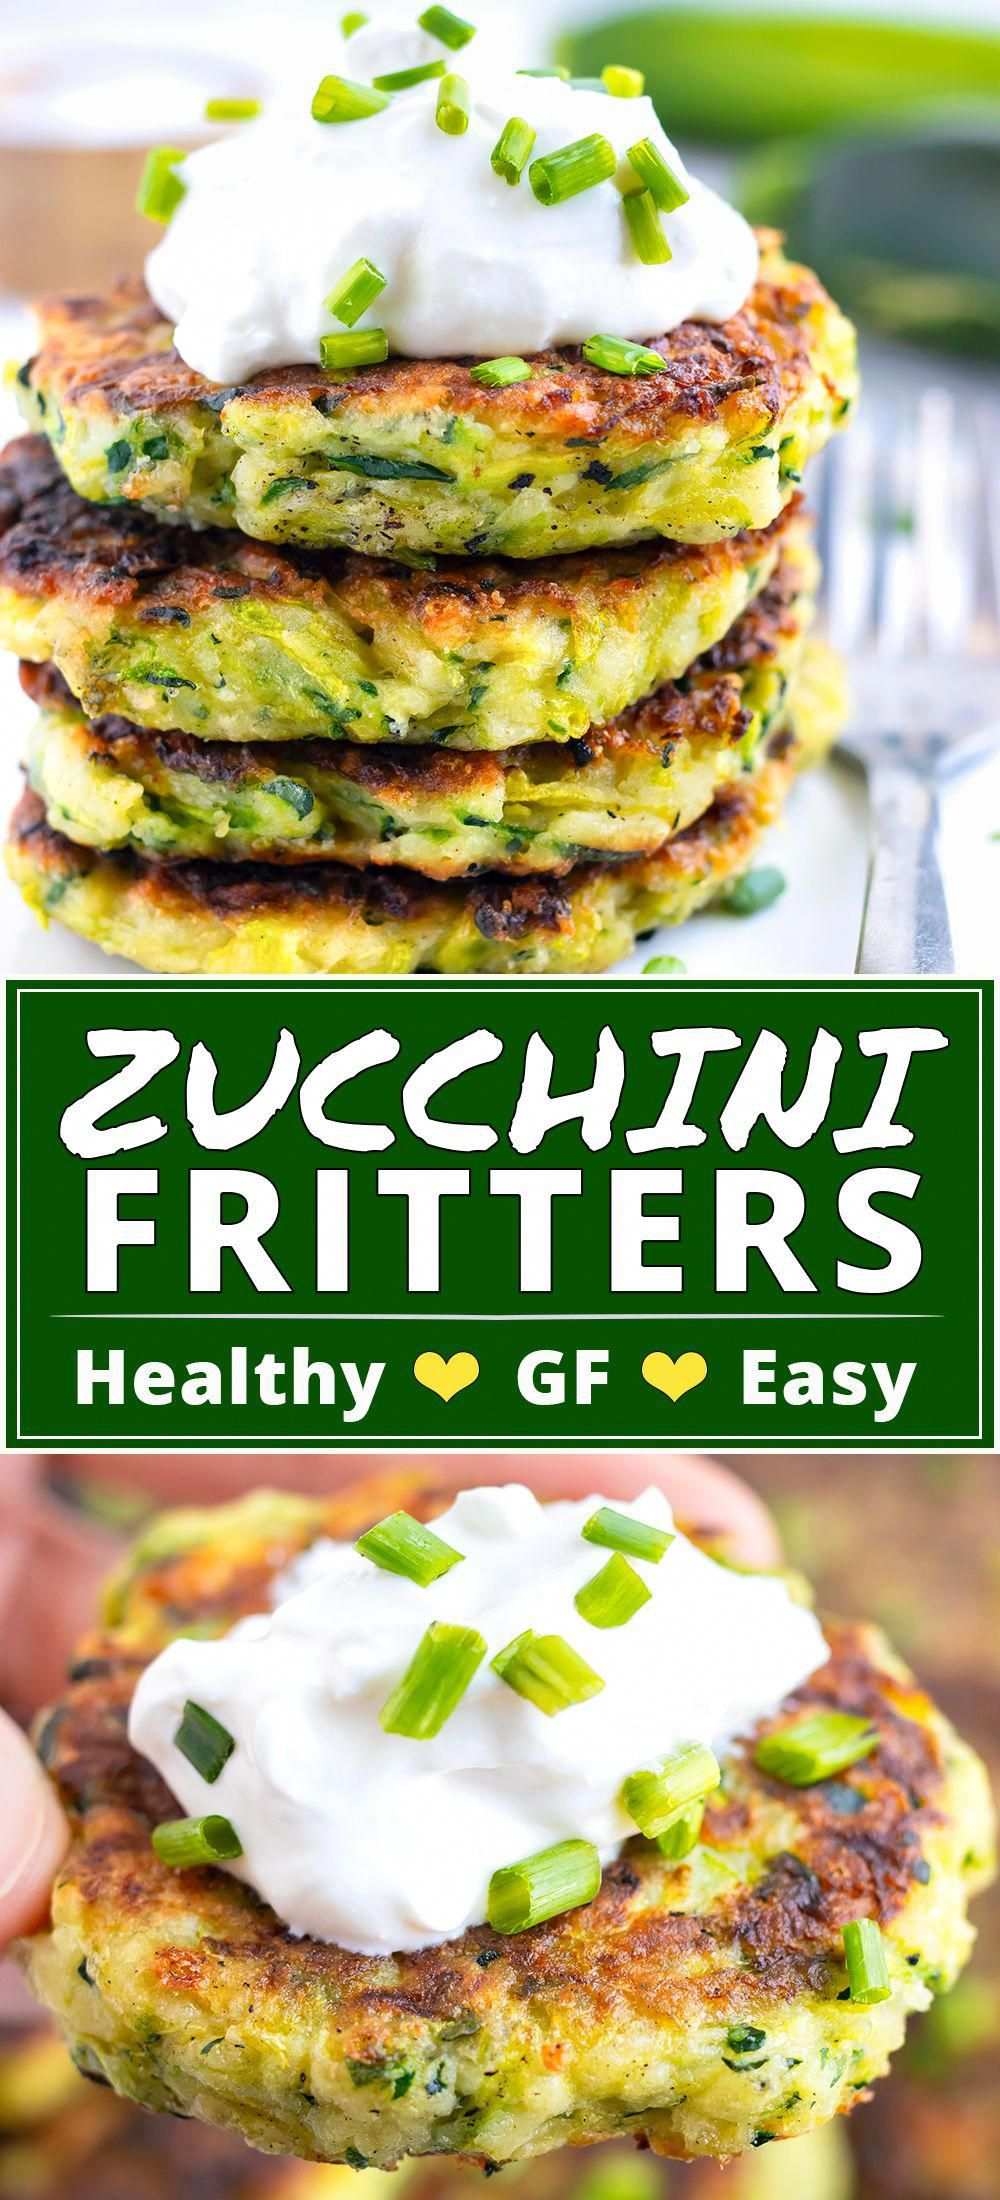 Crispy Baked Zucchini Fritters Recipe  Zucchini Fritters are a healthy glutenfree side dish or appetizer recipe that is made from grated zucchini Parmesan cheese and a to...